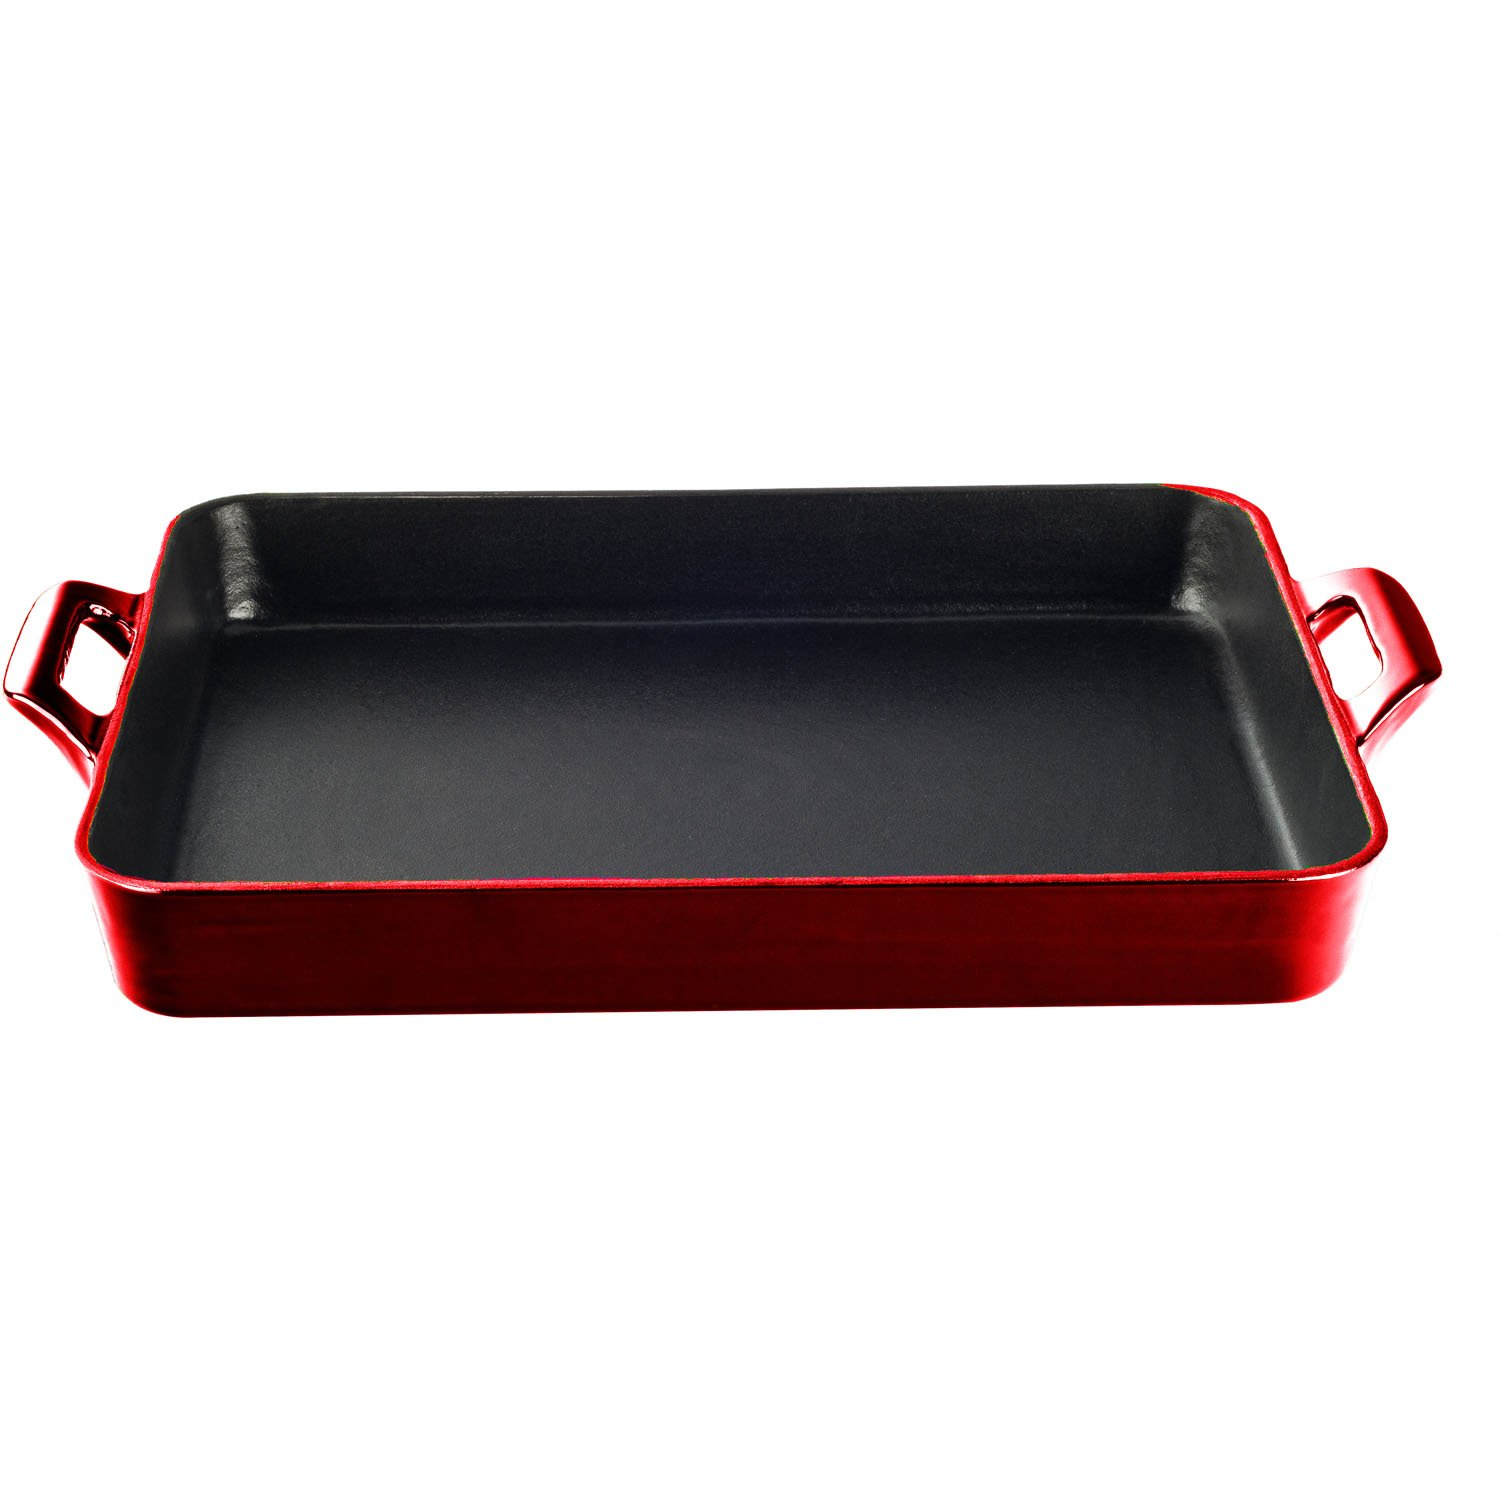 La Cuisine LC 8170 1 Piece Shallow Cast Iron Roasting Pan with Enamel Finish, Ultramarine Blue